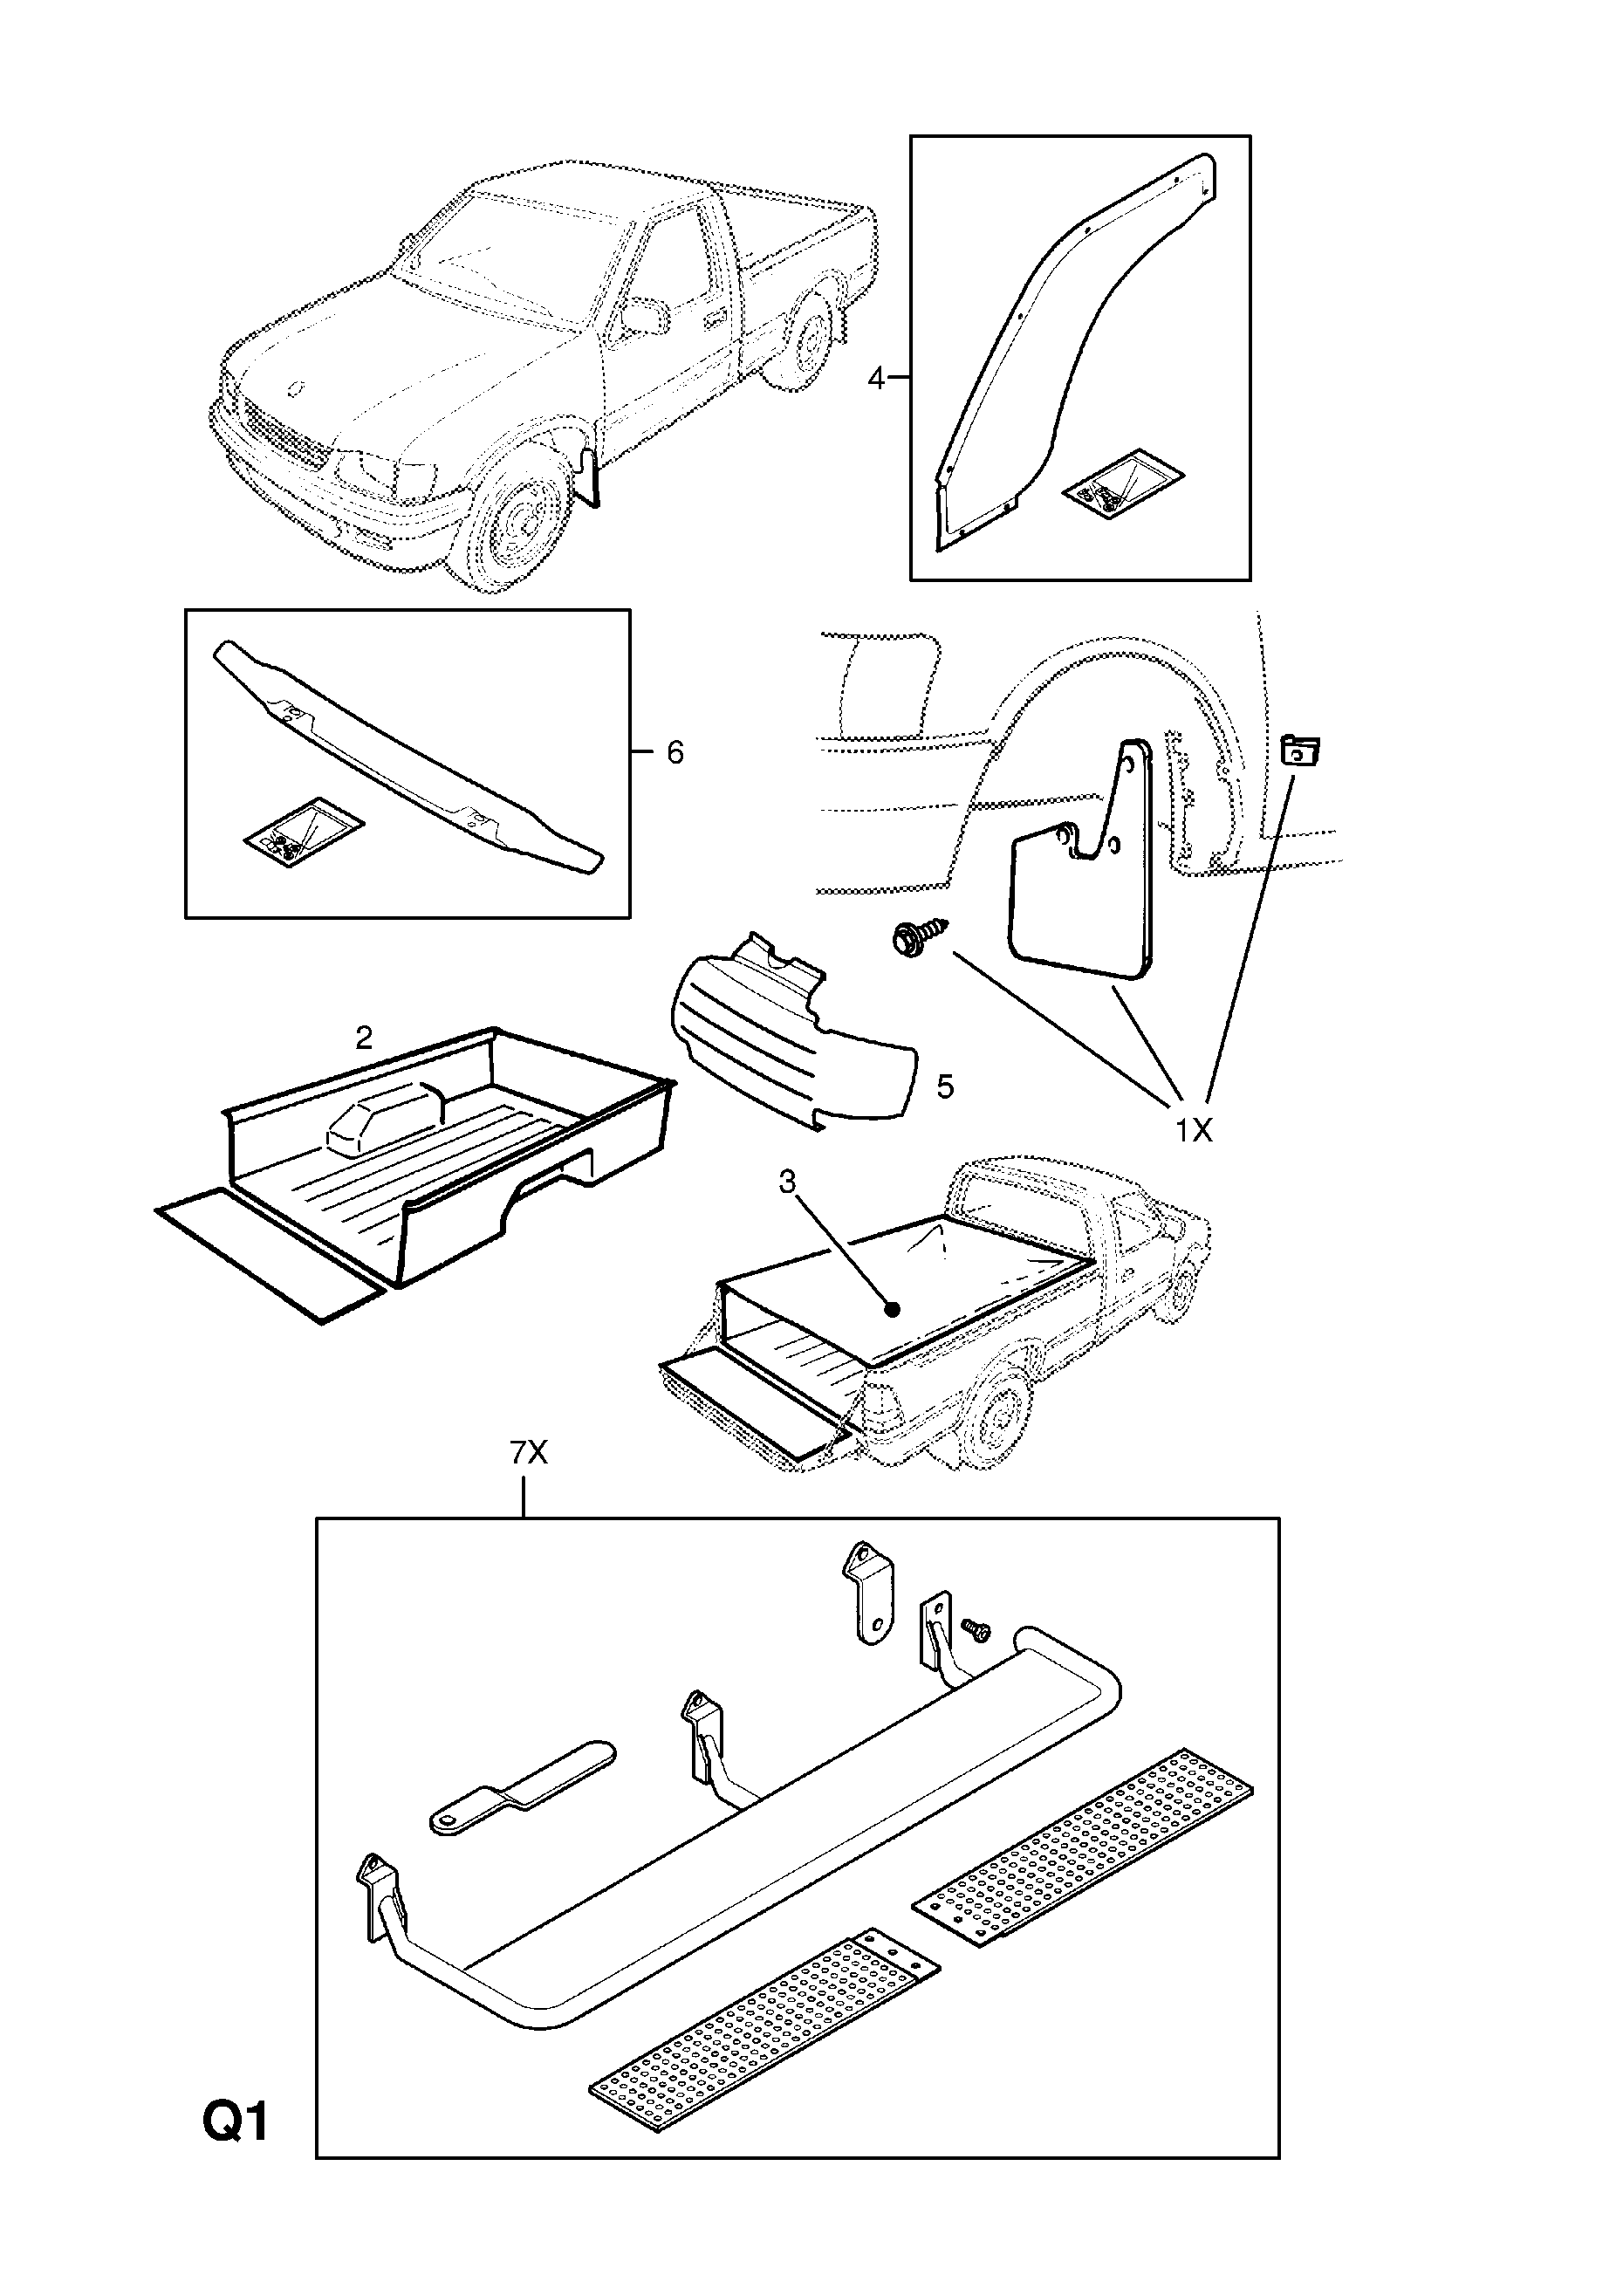 Gm 5 3 Accessories Diagram Electrical Wiring Diagrams 1 Liter Engine Opel Campo 1997 2002 Q Body Exterior Fittings 31